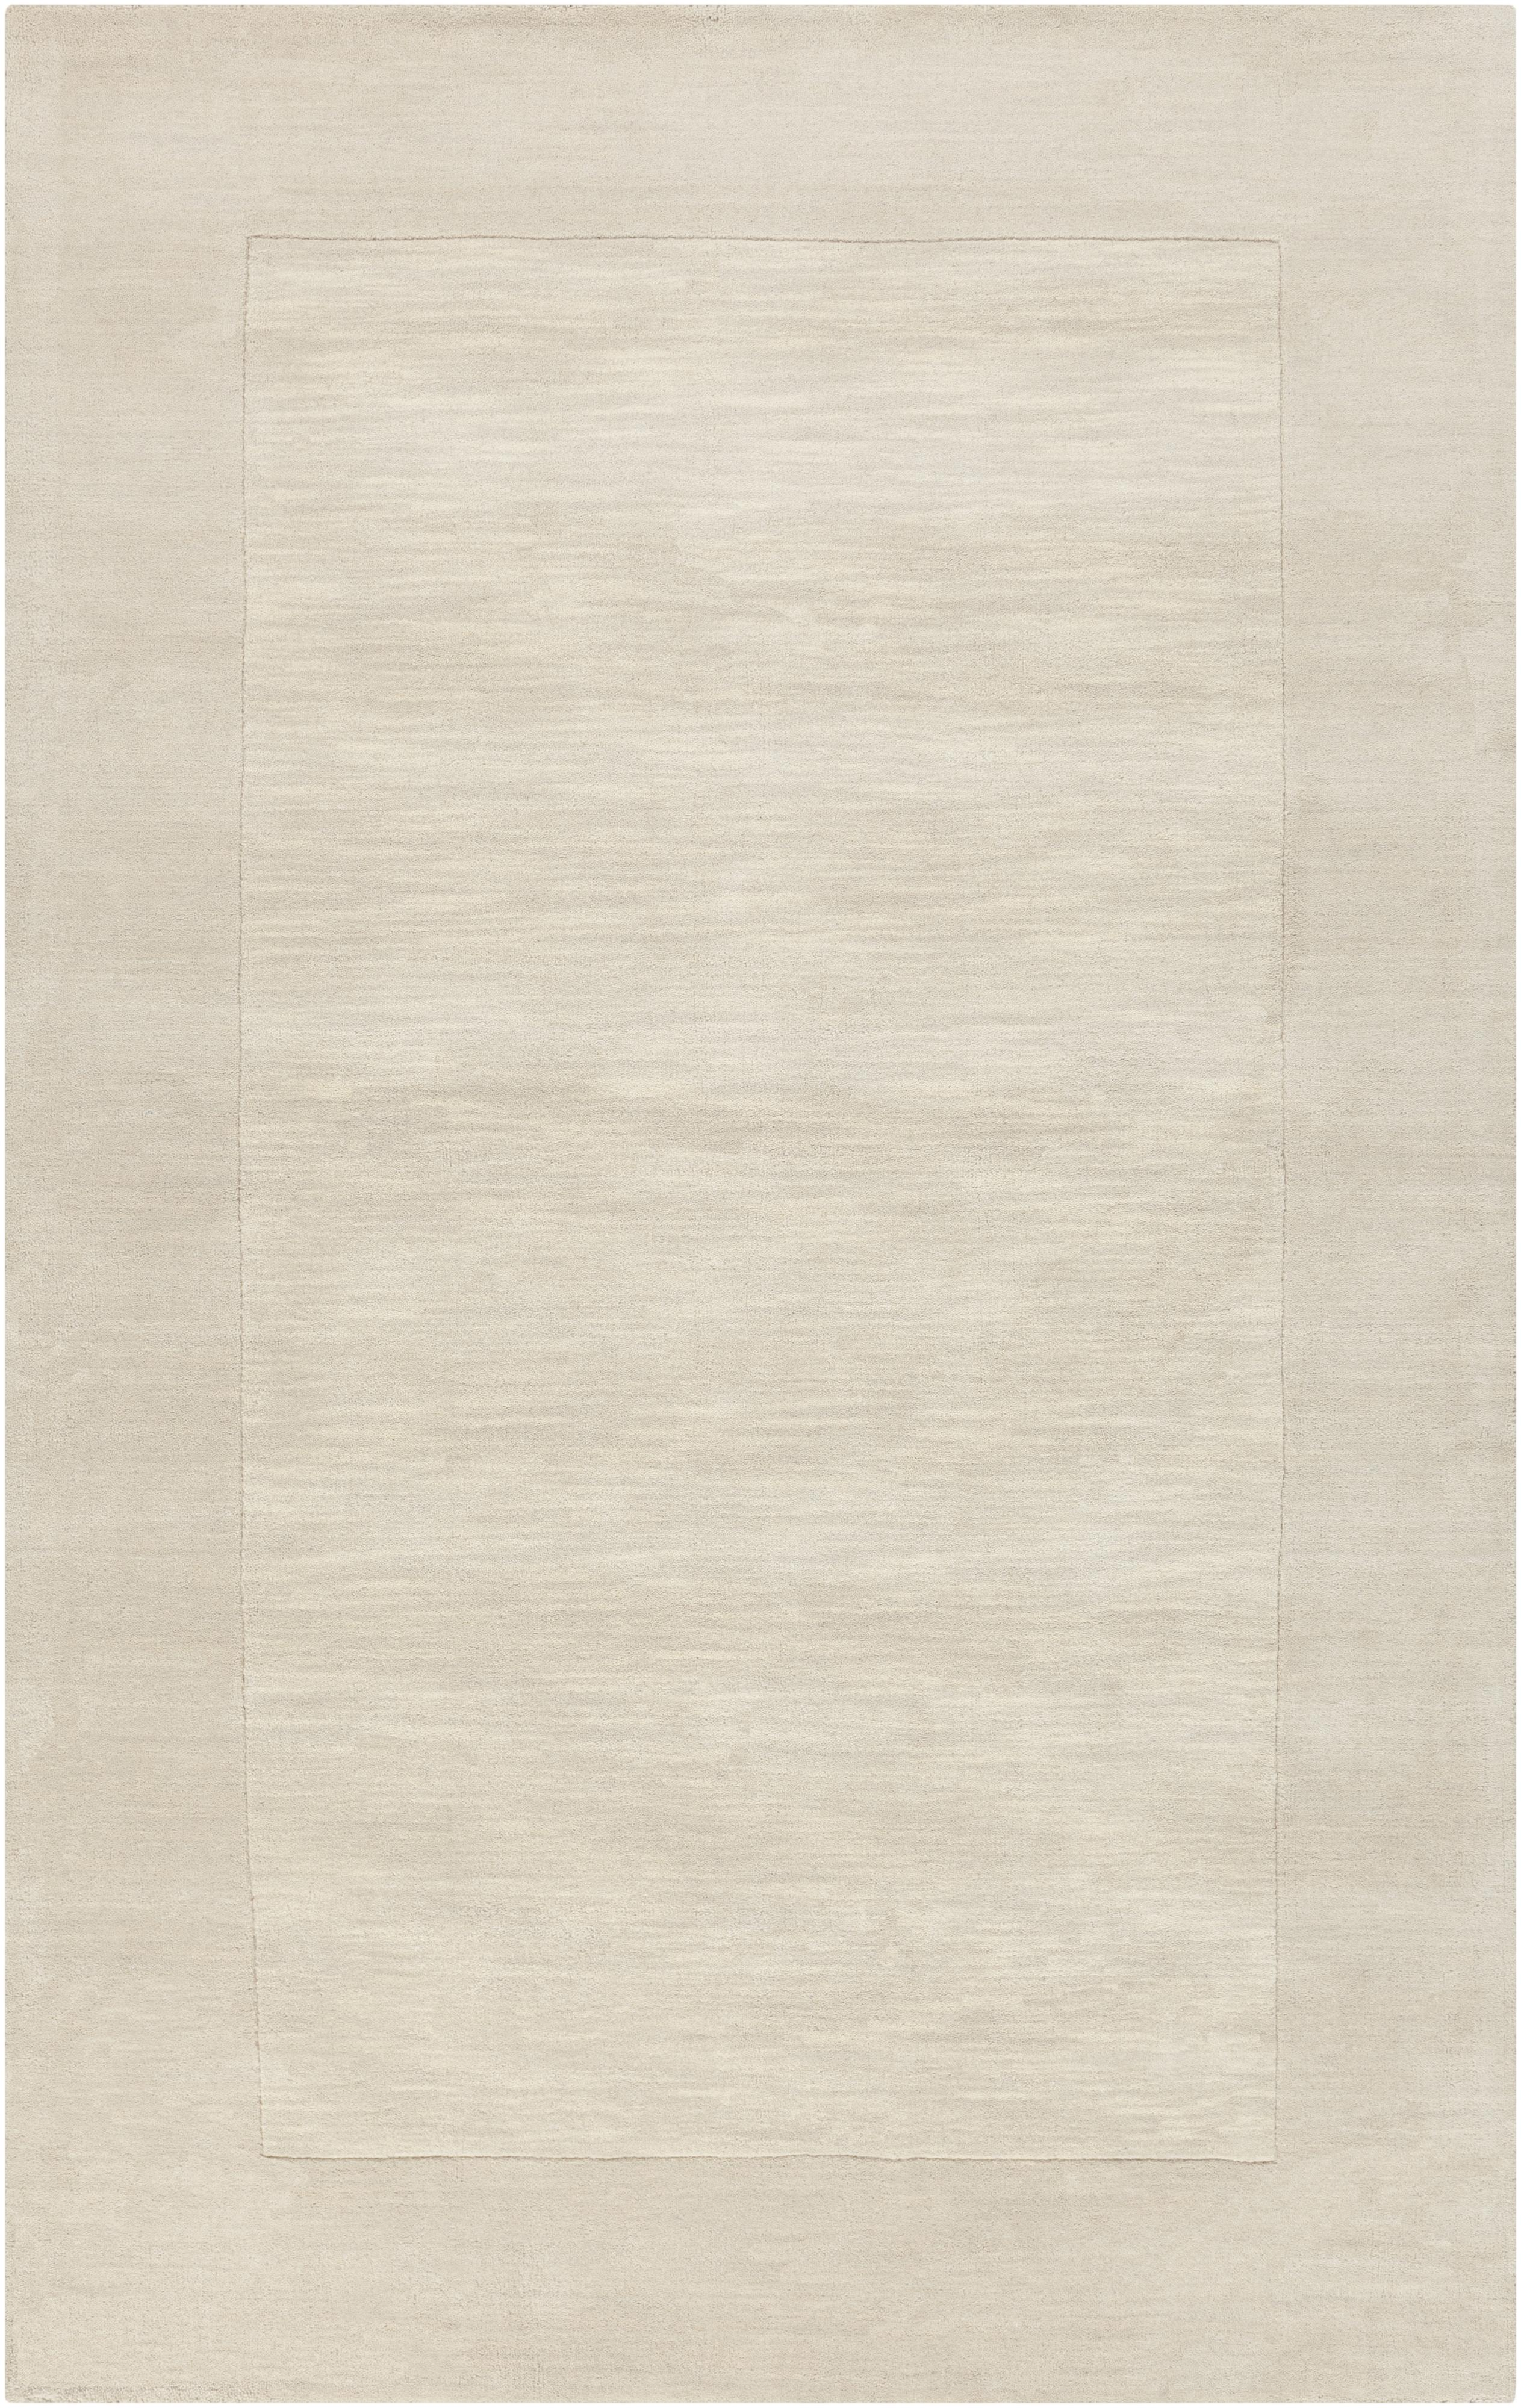 Surya Mystique 6' x 9' - Item Number: M348-69